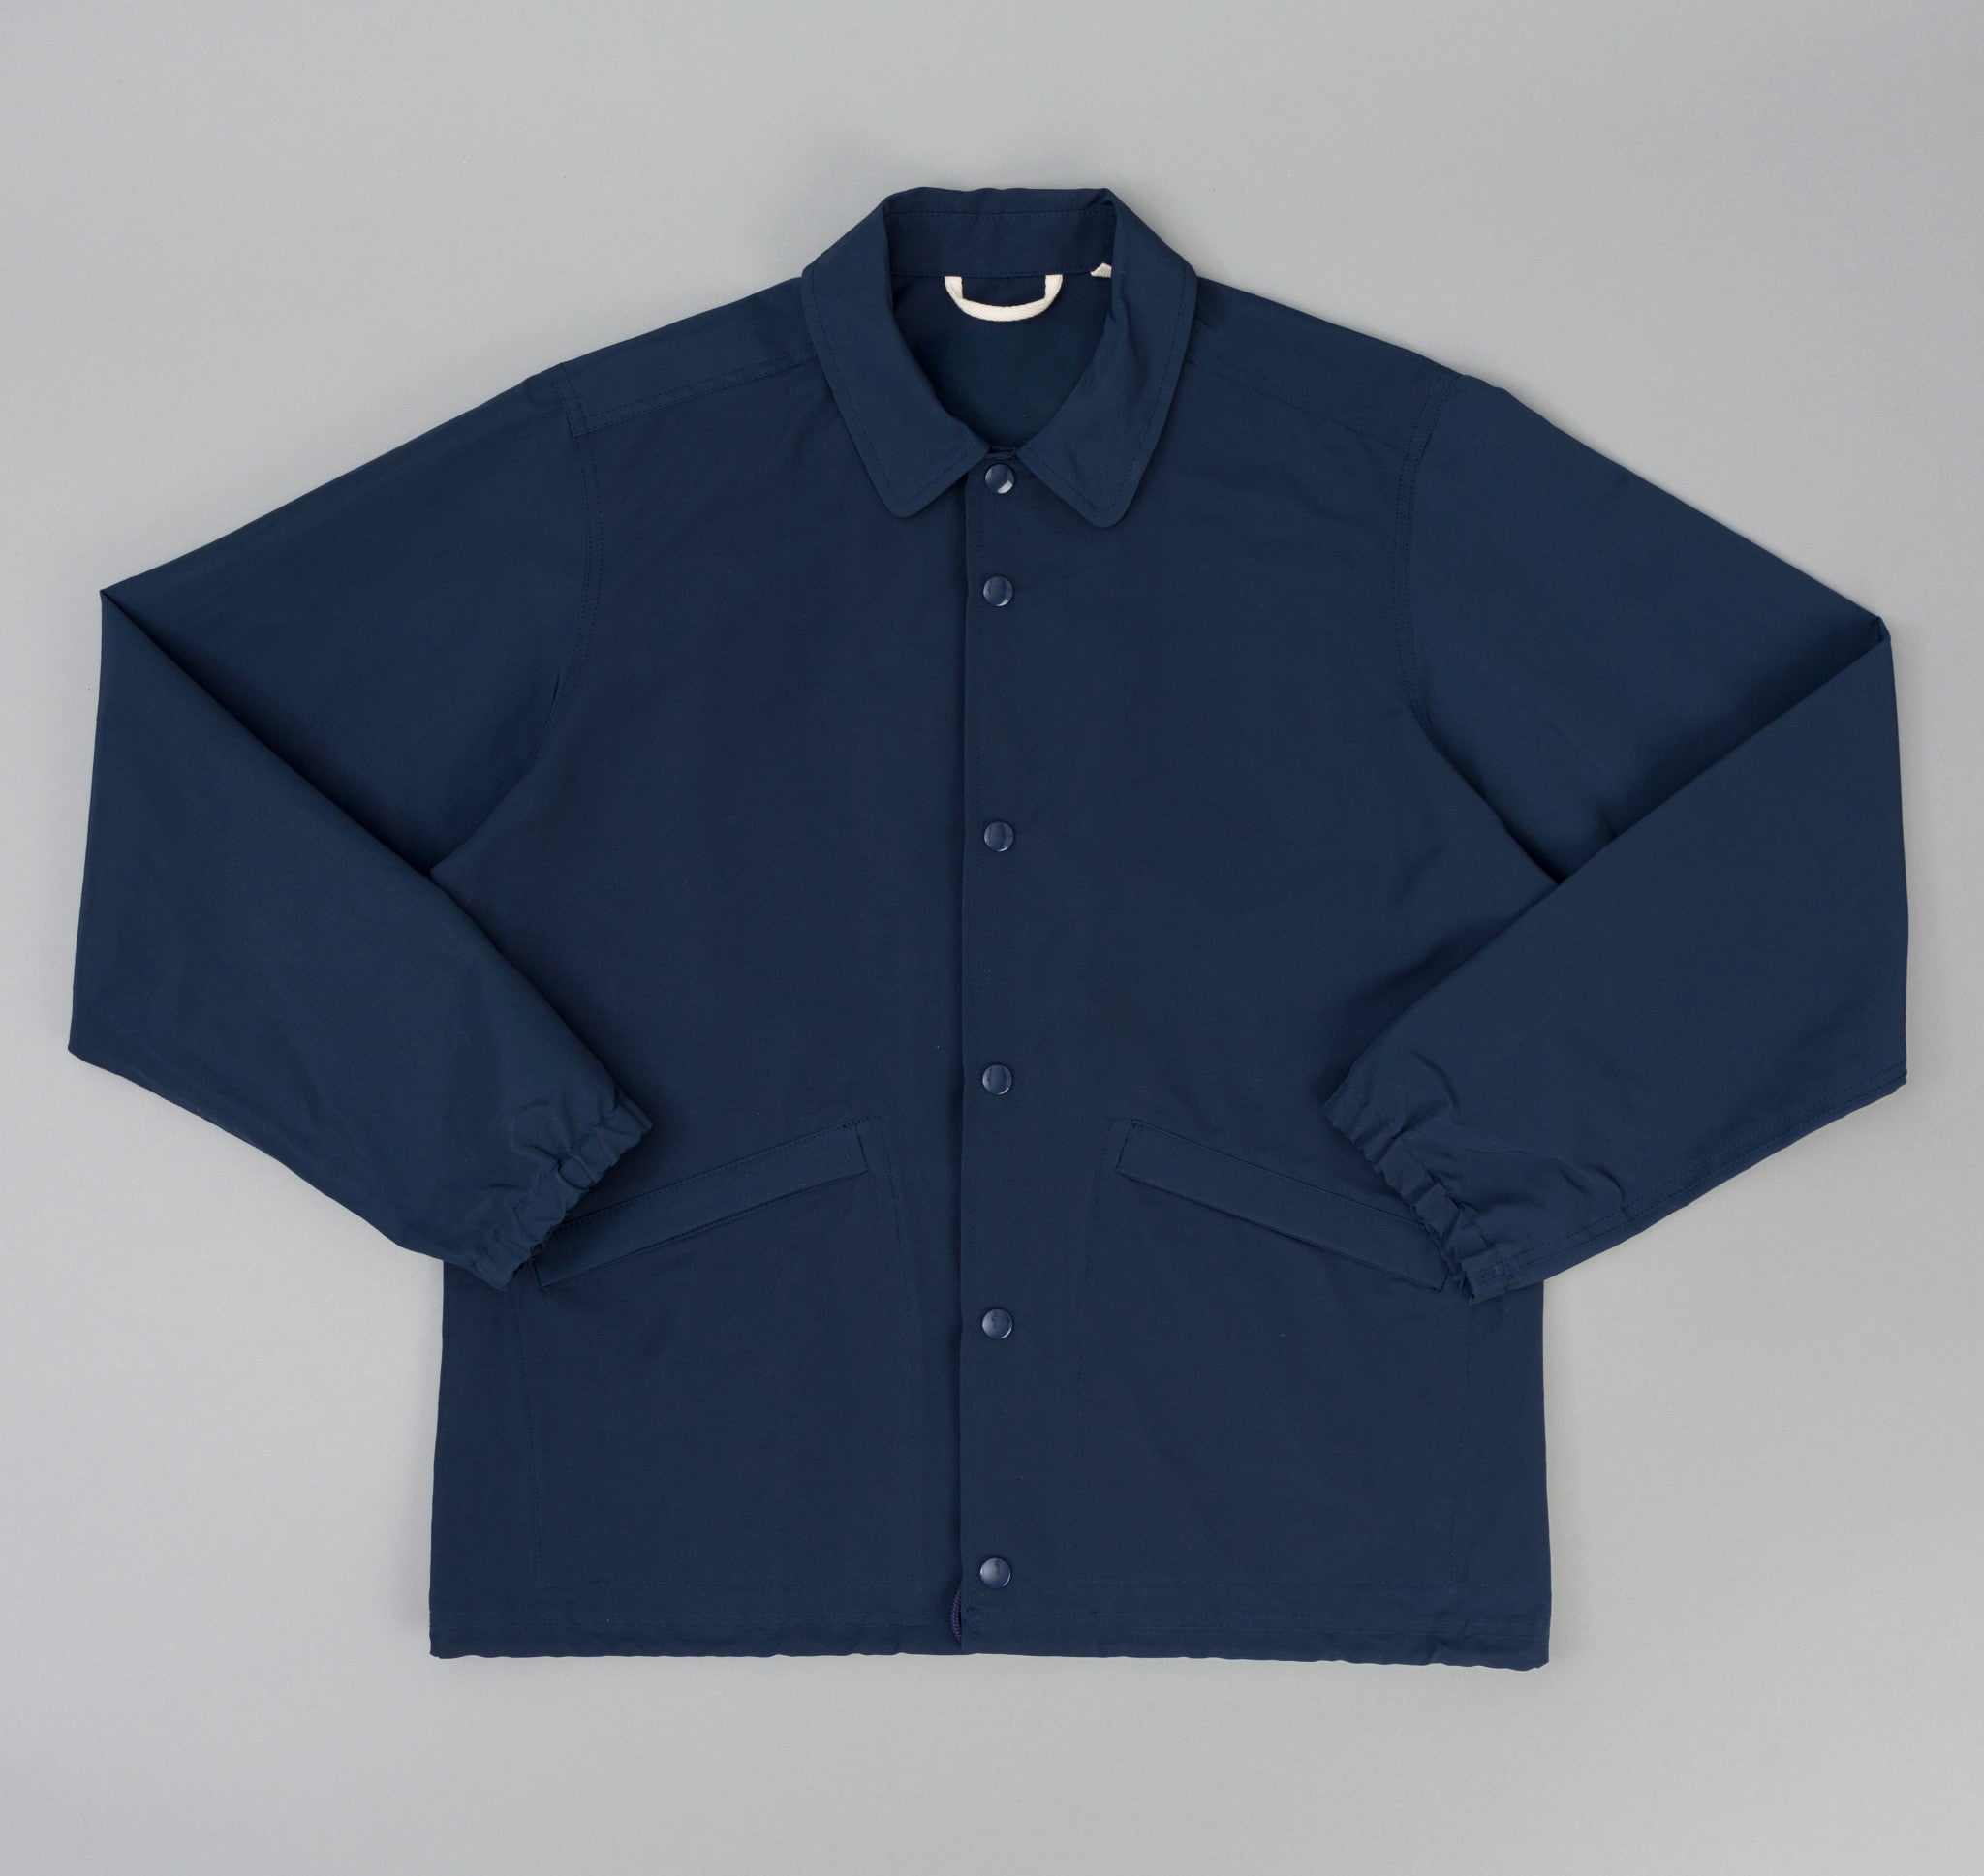 The Hill-Side - Ueno Jacket, Navy 60/40 Grosgrain - JK9-351 - image 1